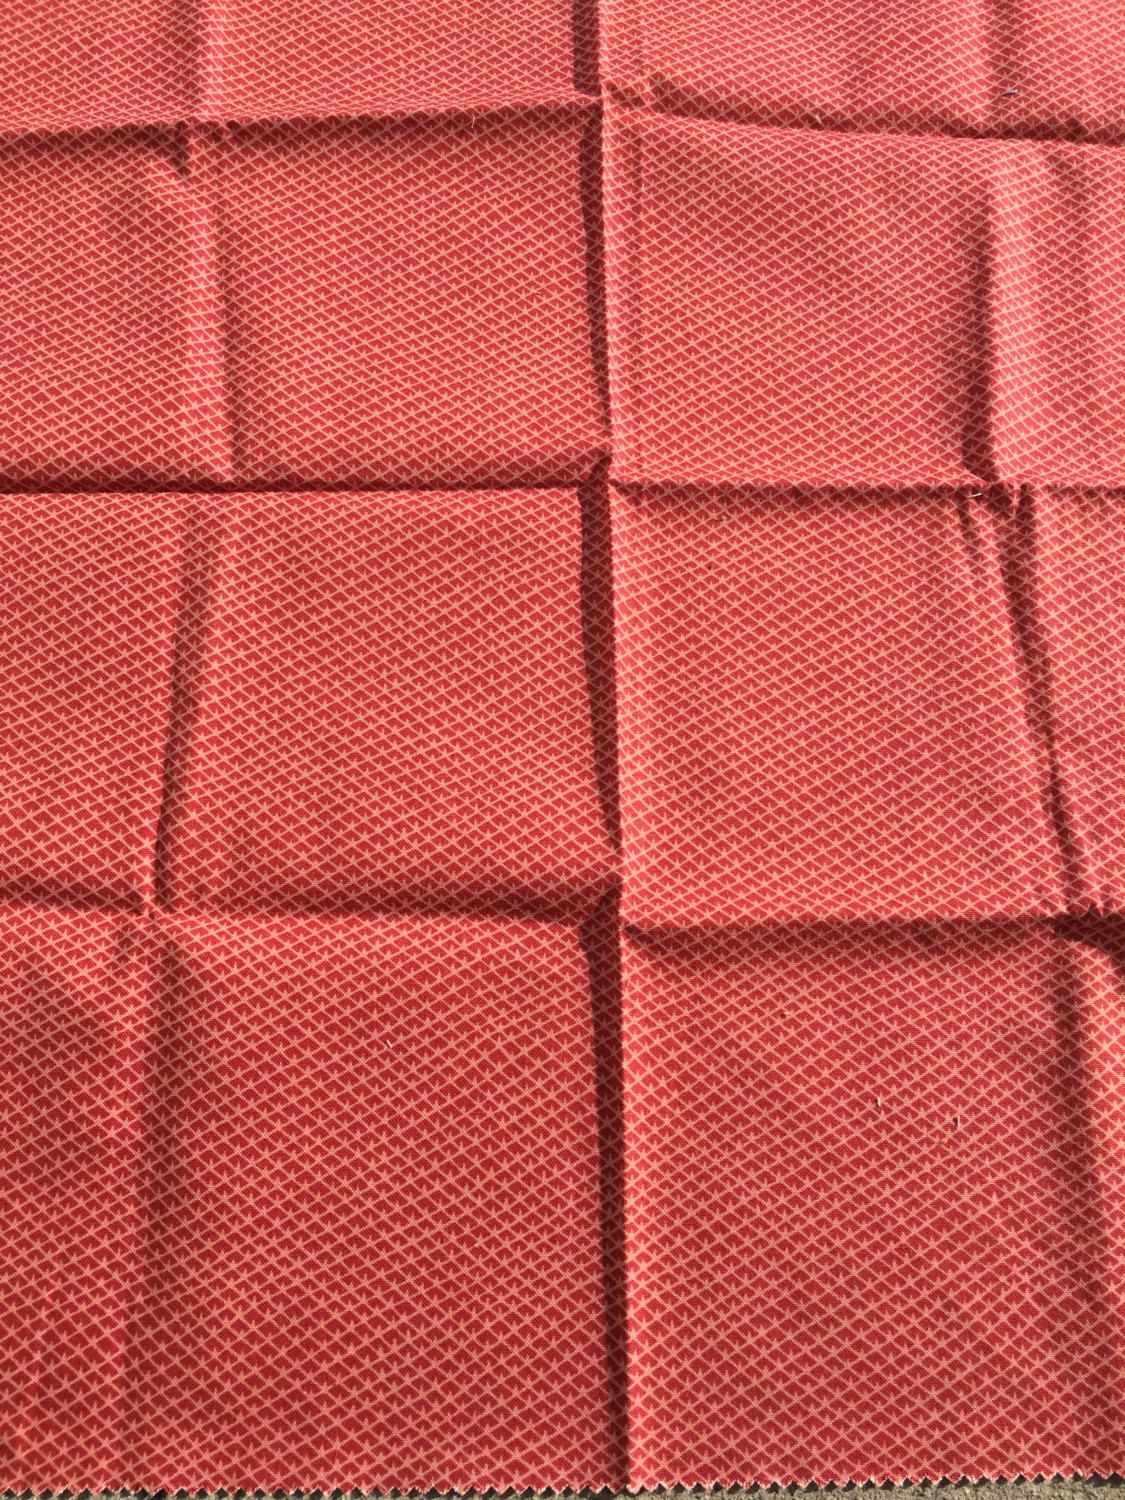 "Red Robert Allen Fabric Demeure Coral 26"" X 26"" 100% Cotton + Free Samples with Order!!! by Fabricsamples10 on Etsy"